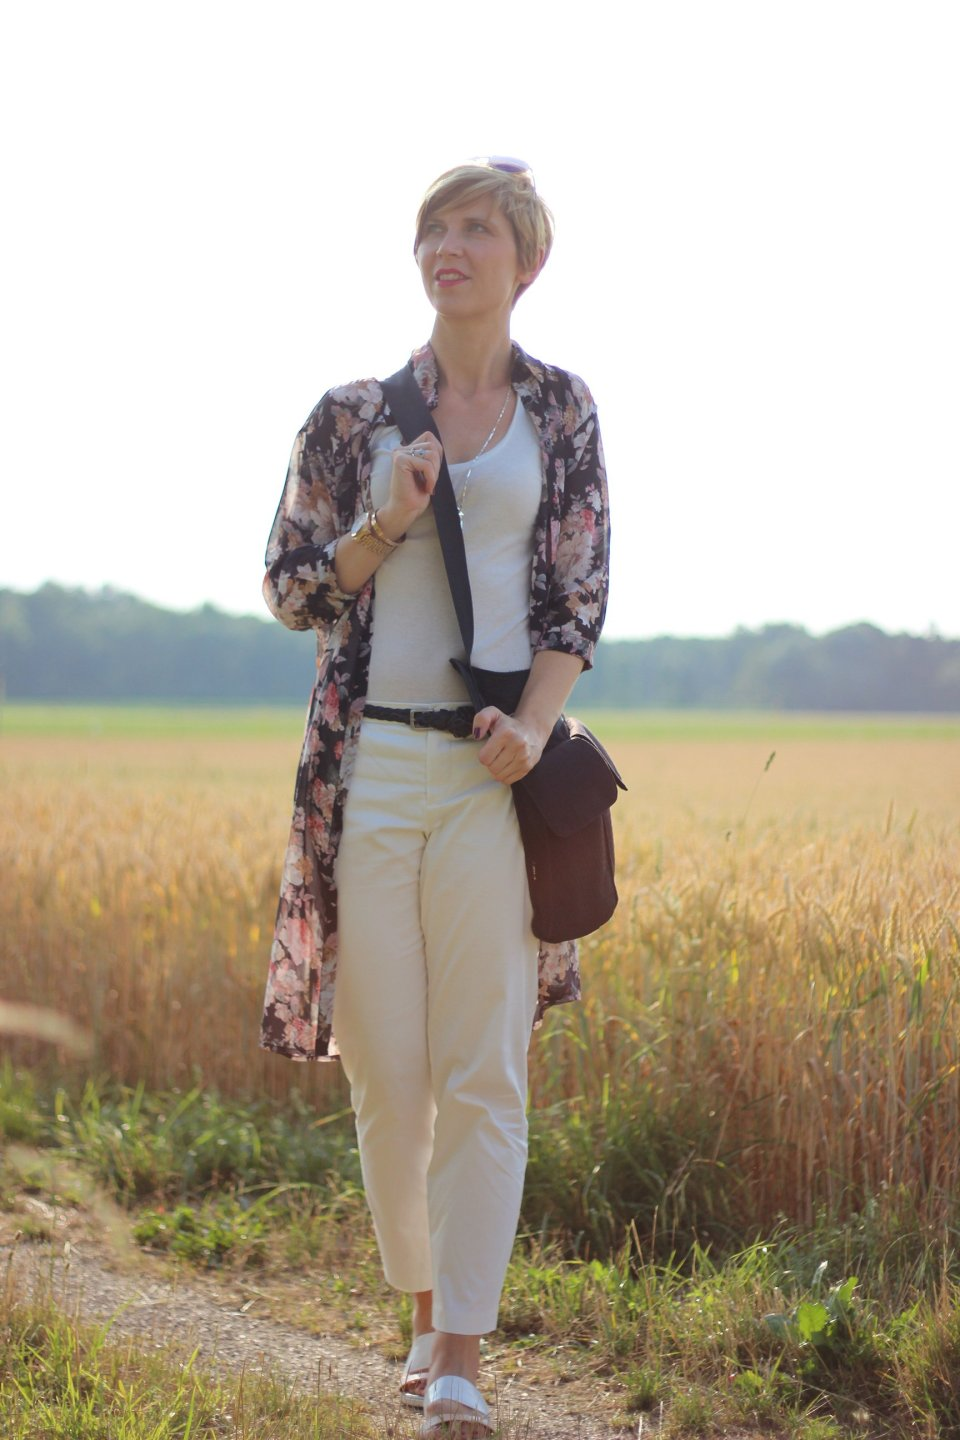 IMG_8006aLongbluse_Blumen_flowers_weisseHose_whitepants_oui_top_summer_fashion_aheamdundahos_conny_crossbodybag